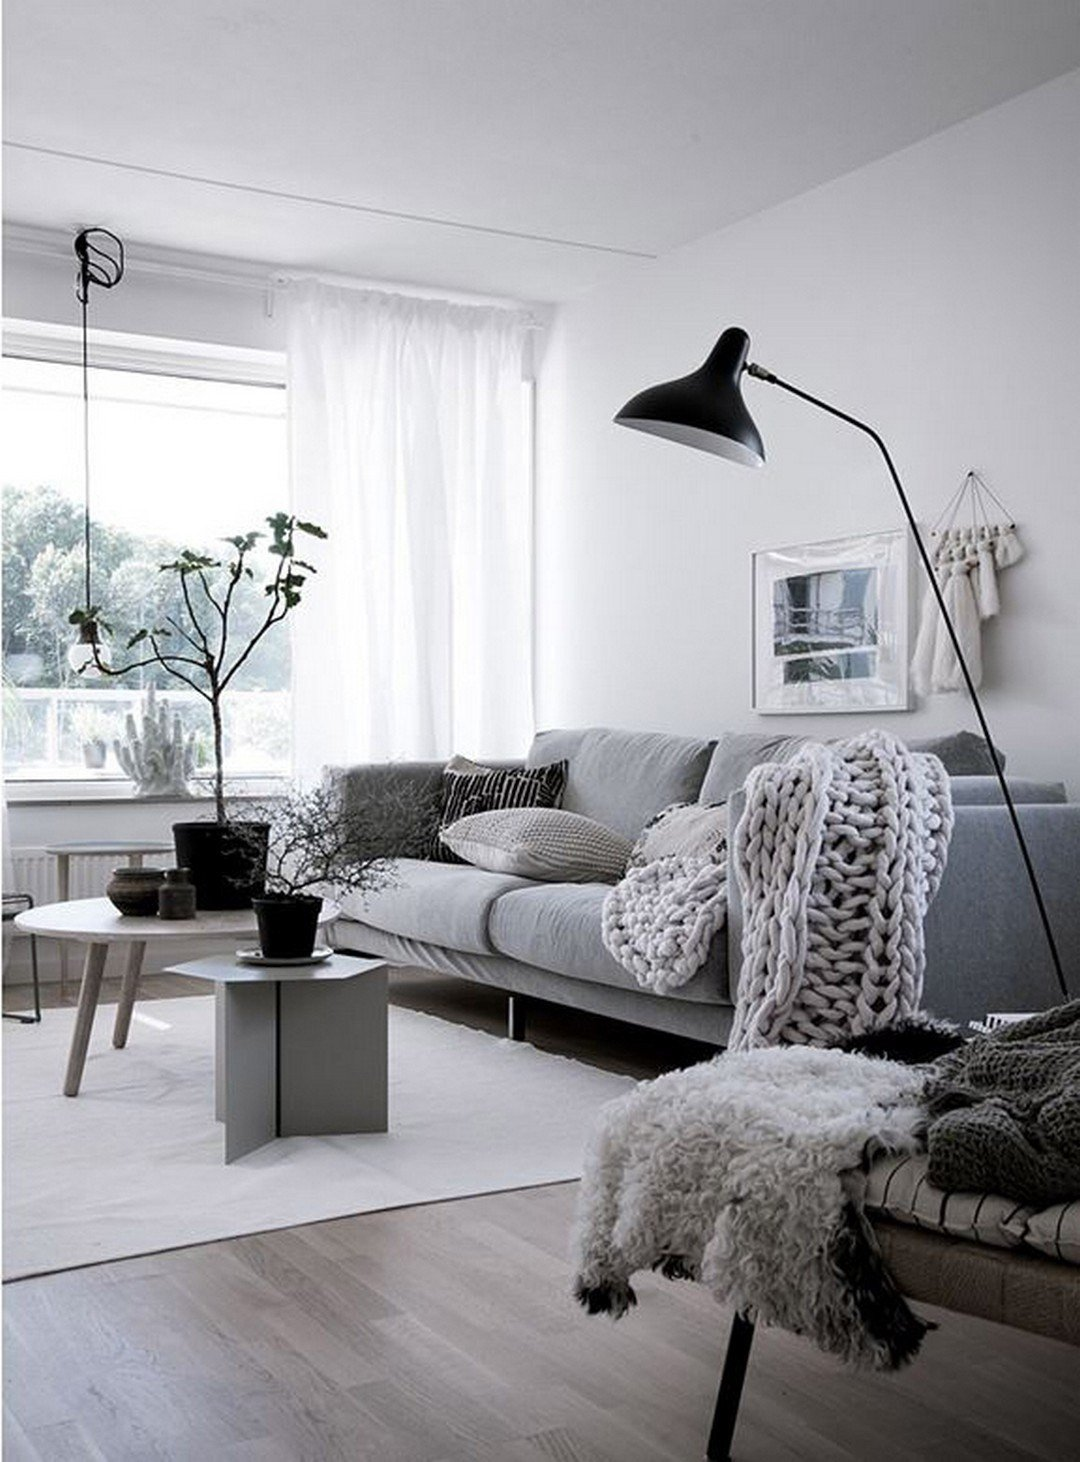 White Living Room Decor Ideas 99 Beautiful White and Grey Living Room Interior